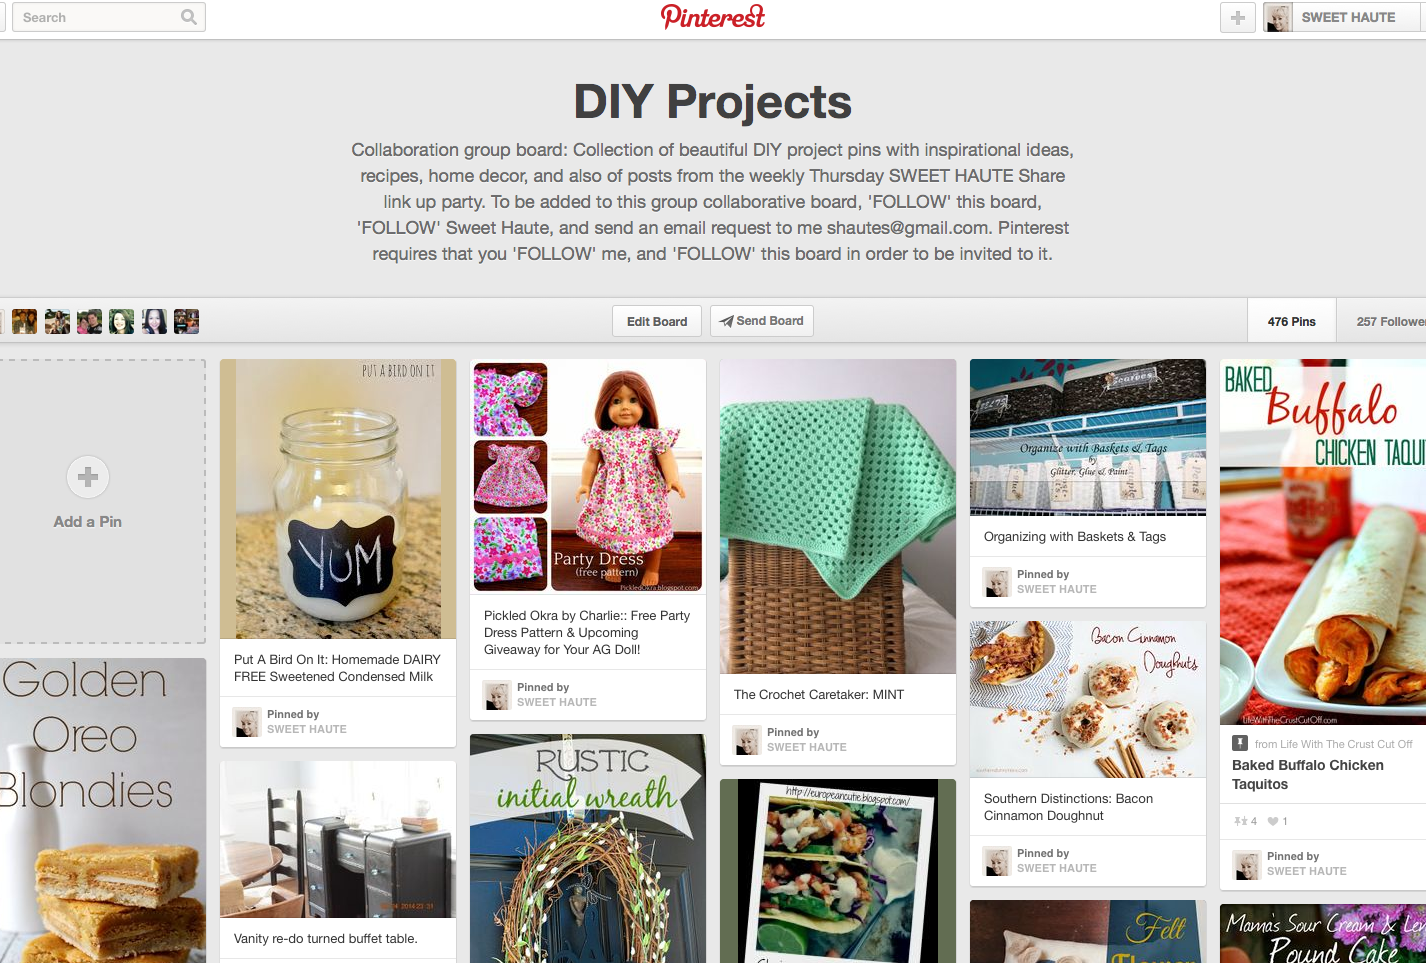 http://www.pinterest.com/sweethaute/diy-projects/